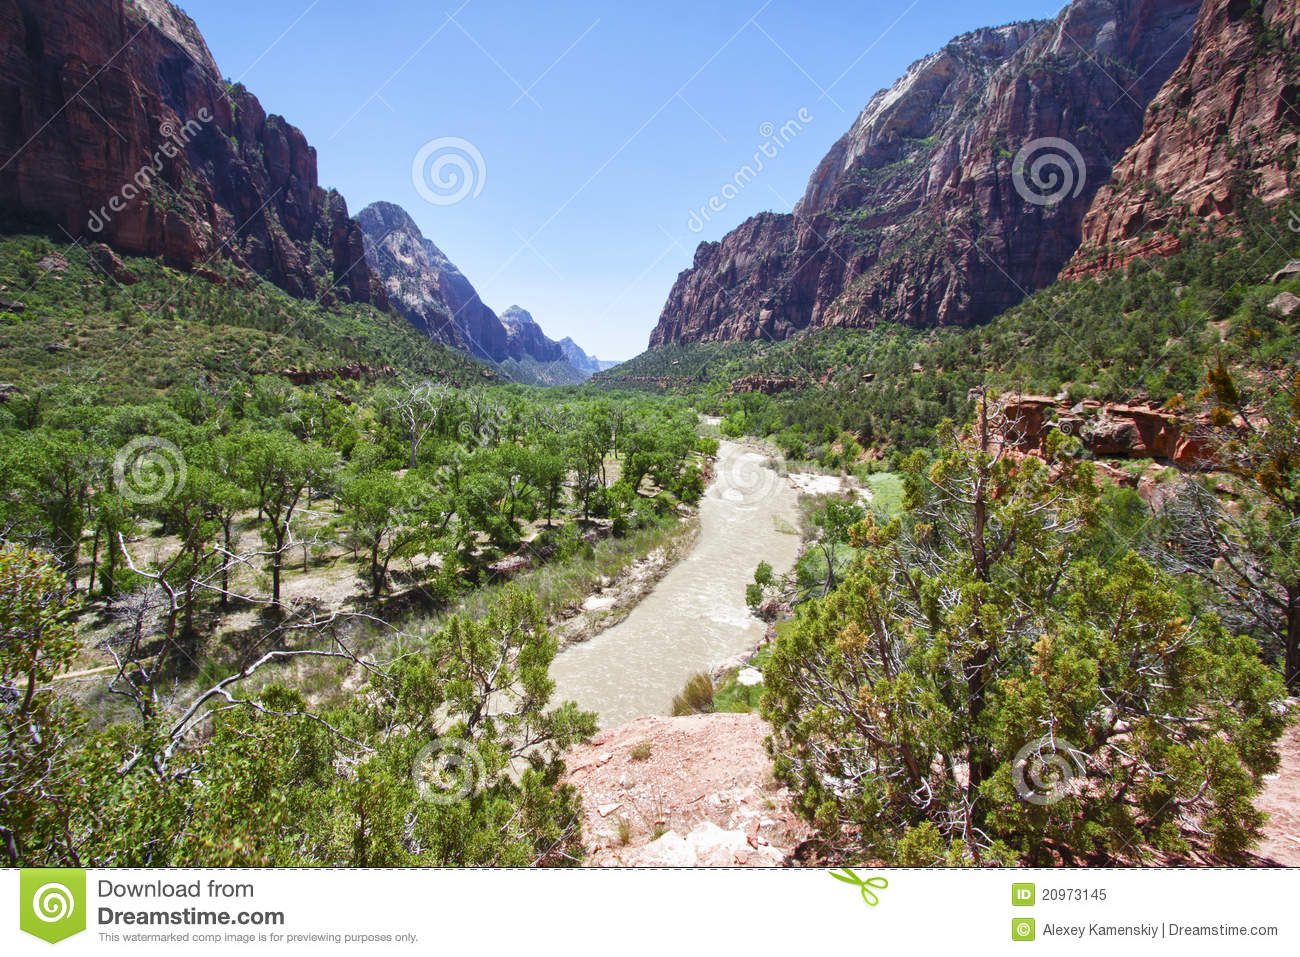 Valley in the Zion Canyon National Park, Utah